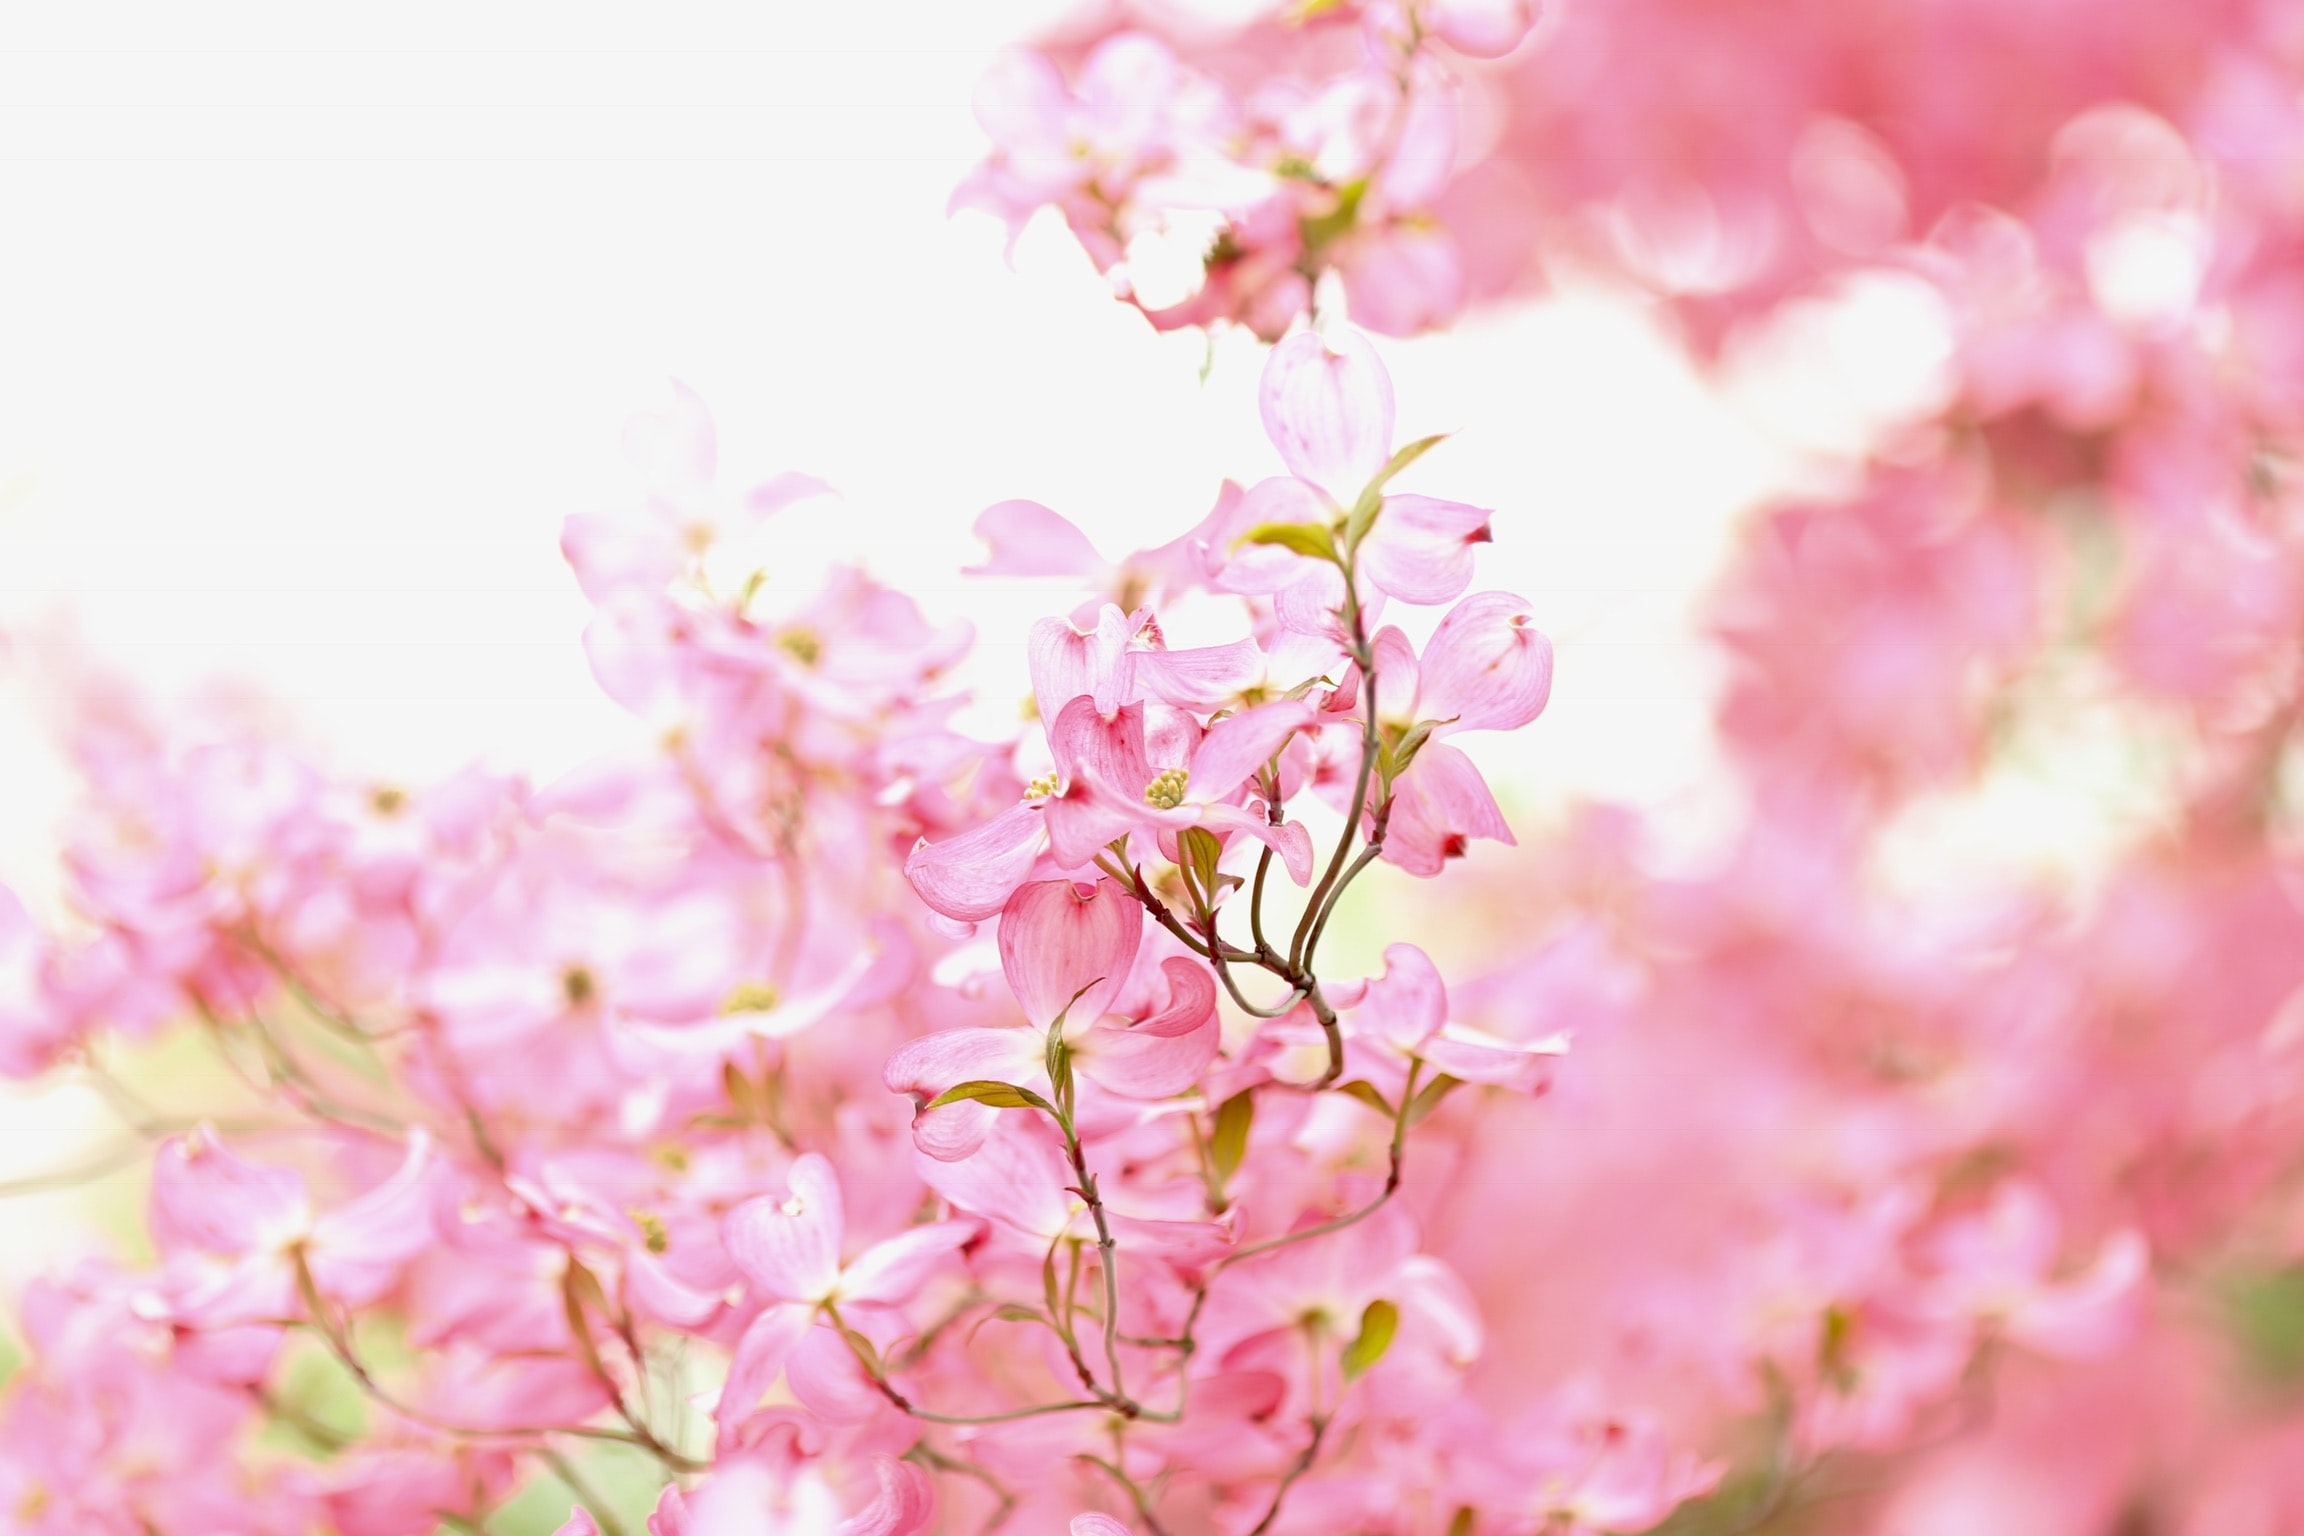 focused photo of a cherry blossom